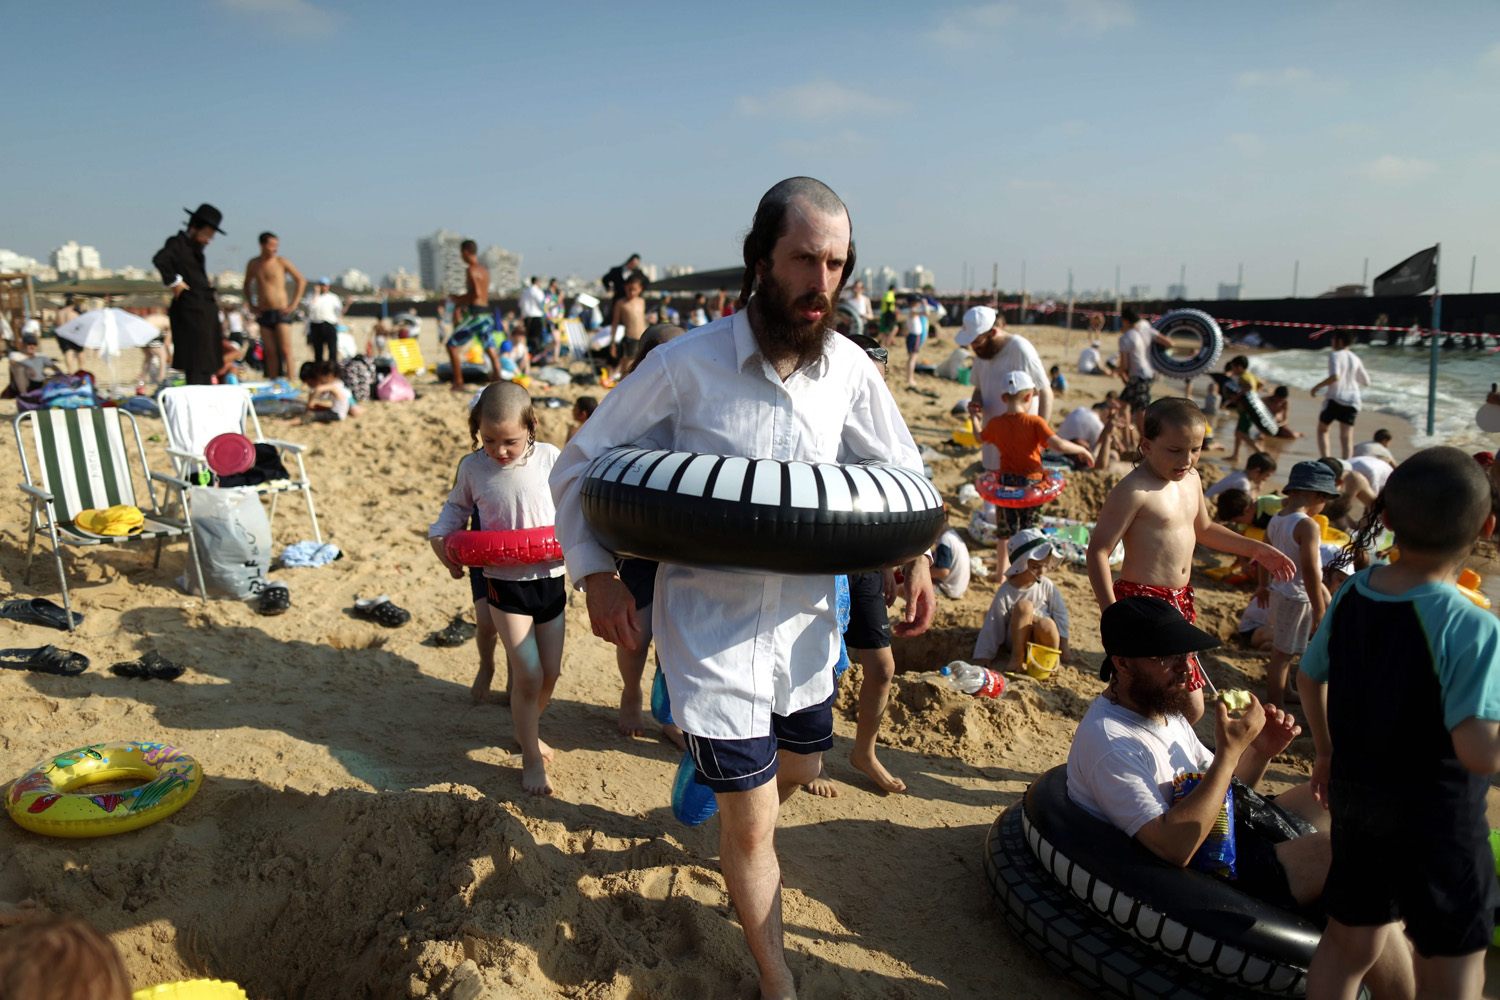 Ultra Orthodox Jews  enjoying summer time at the beach  with their families in the southern city of Ashdod, Israel on August 13, 2014.